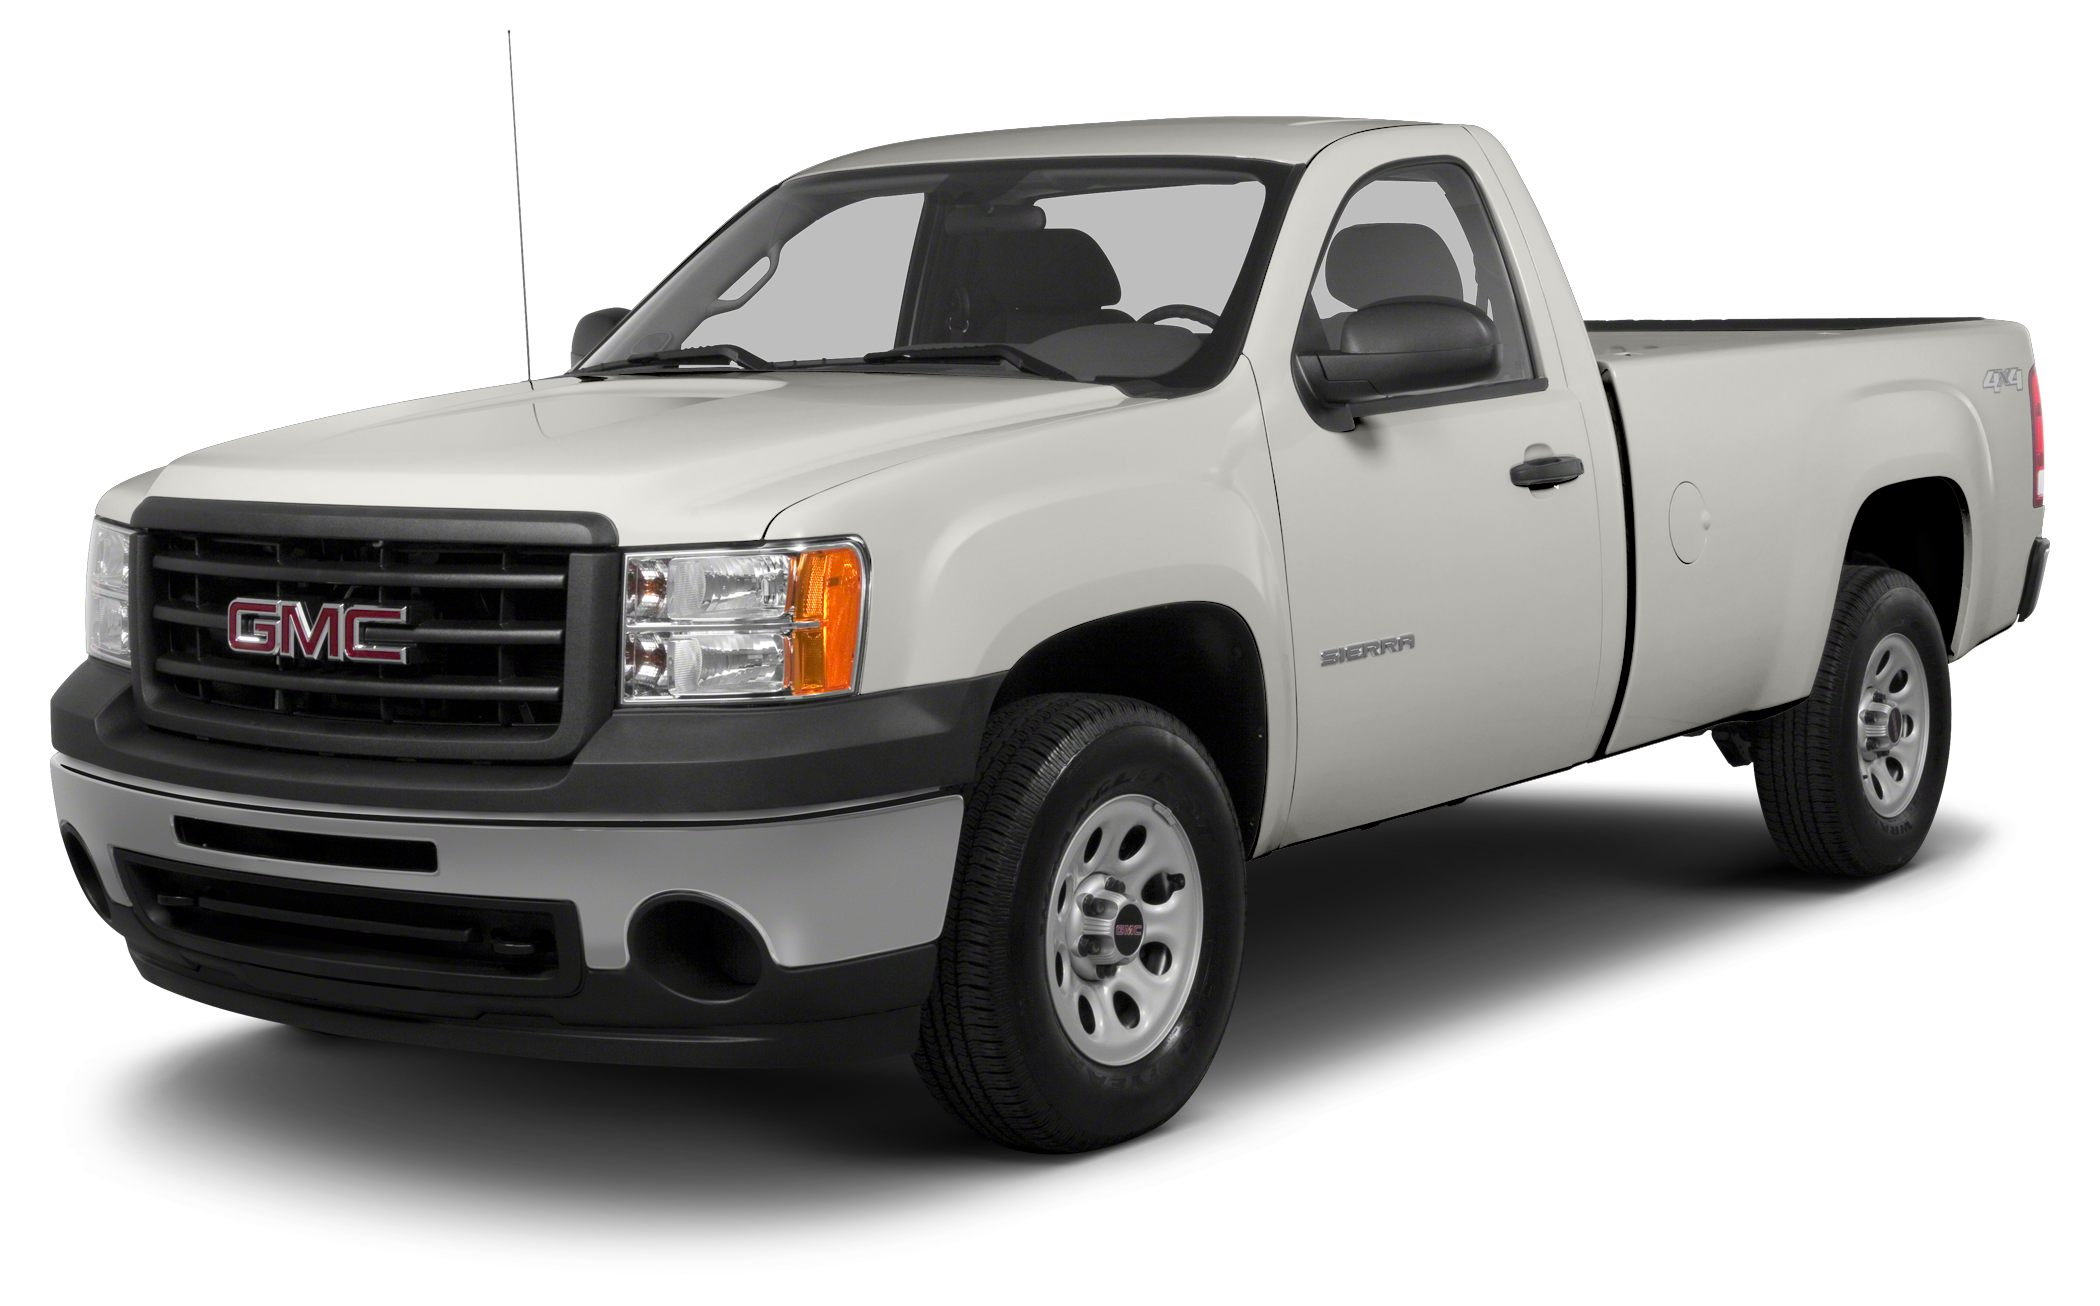 2013 GMC Sierra 1500 SLE SLE trim JUST REPRICED FROM 27955 EPA 21 MPG Hwy15 MPG City CARFAX